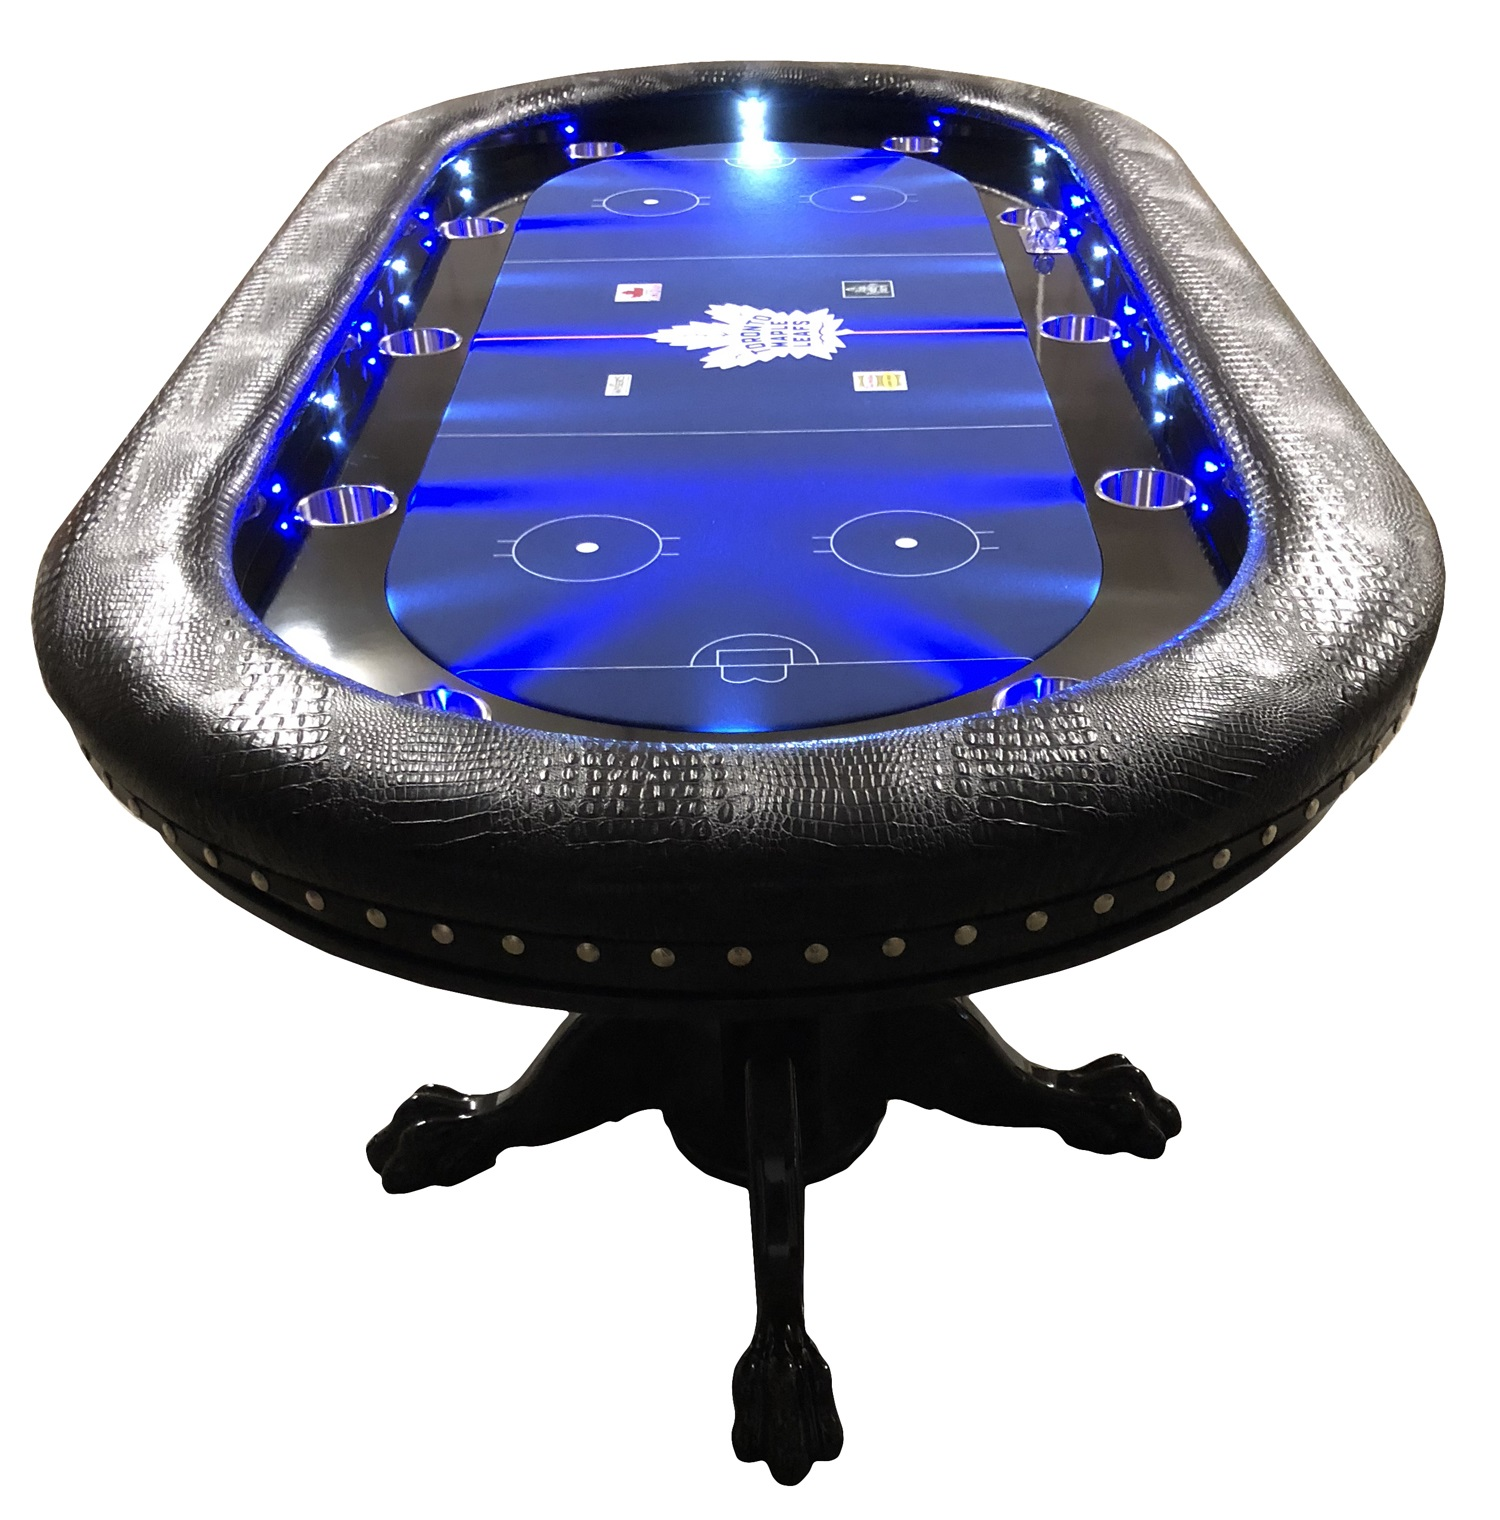 Dining top poker table